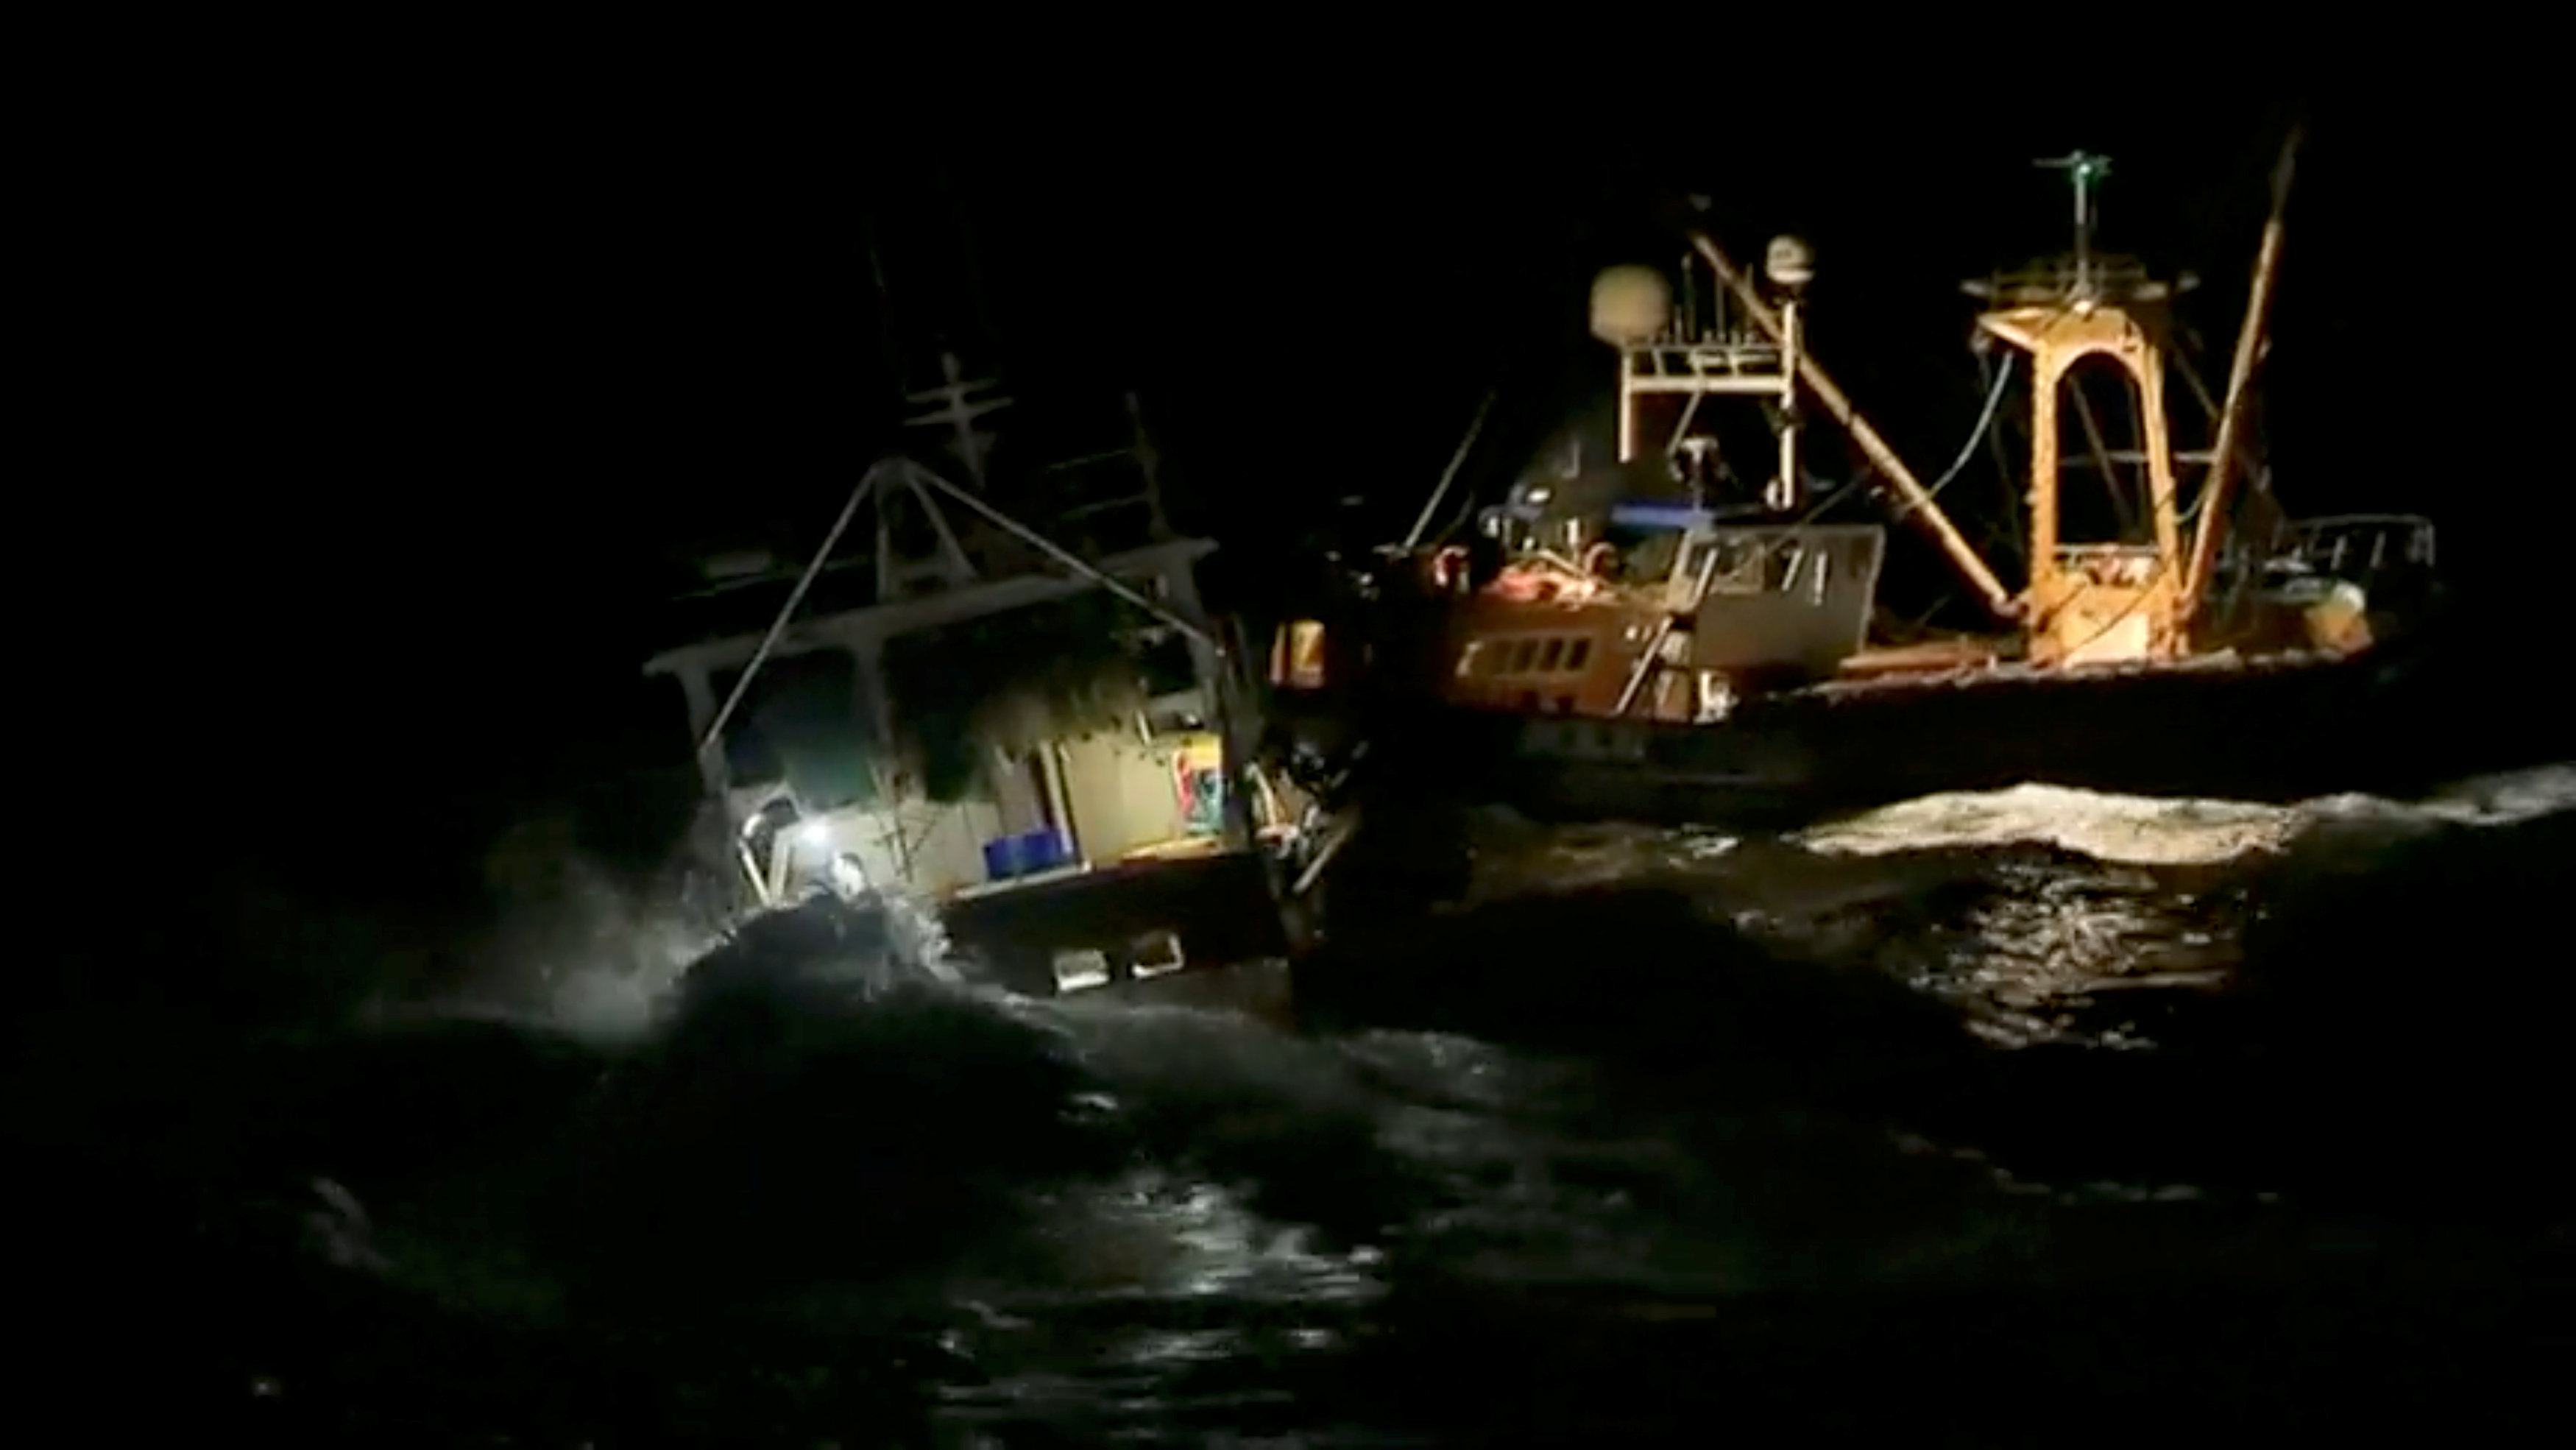 Scallop wars: French fishermen attack British boats in English Channel